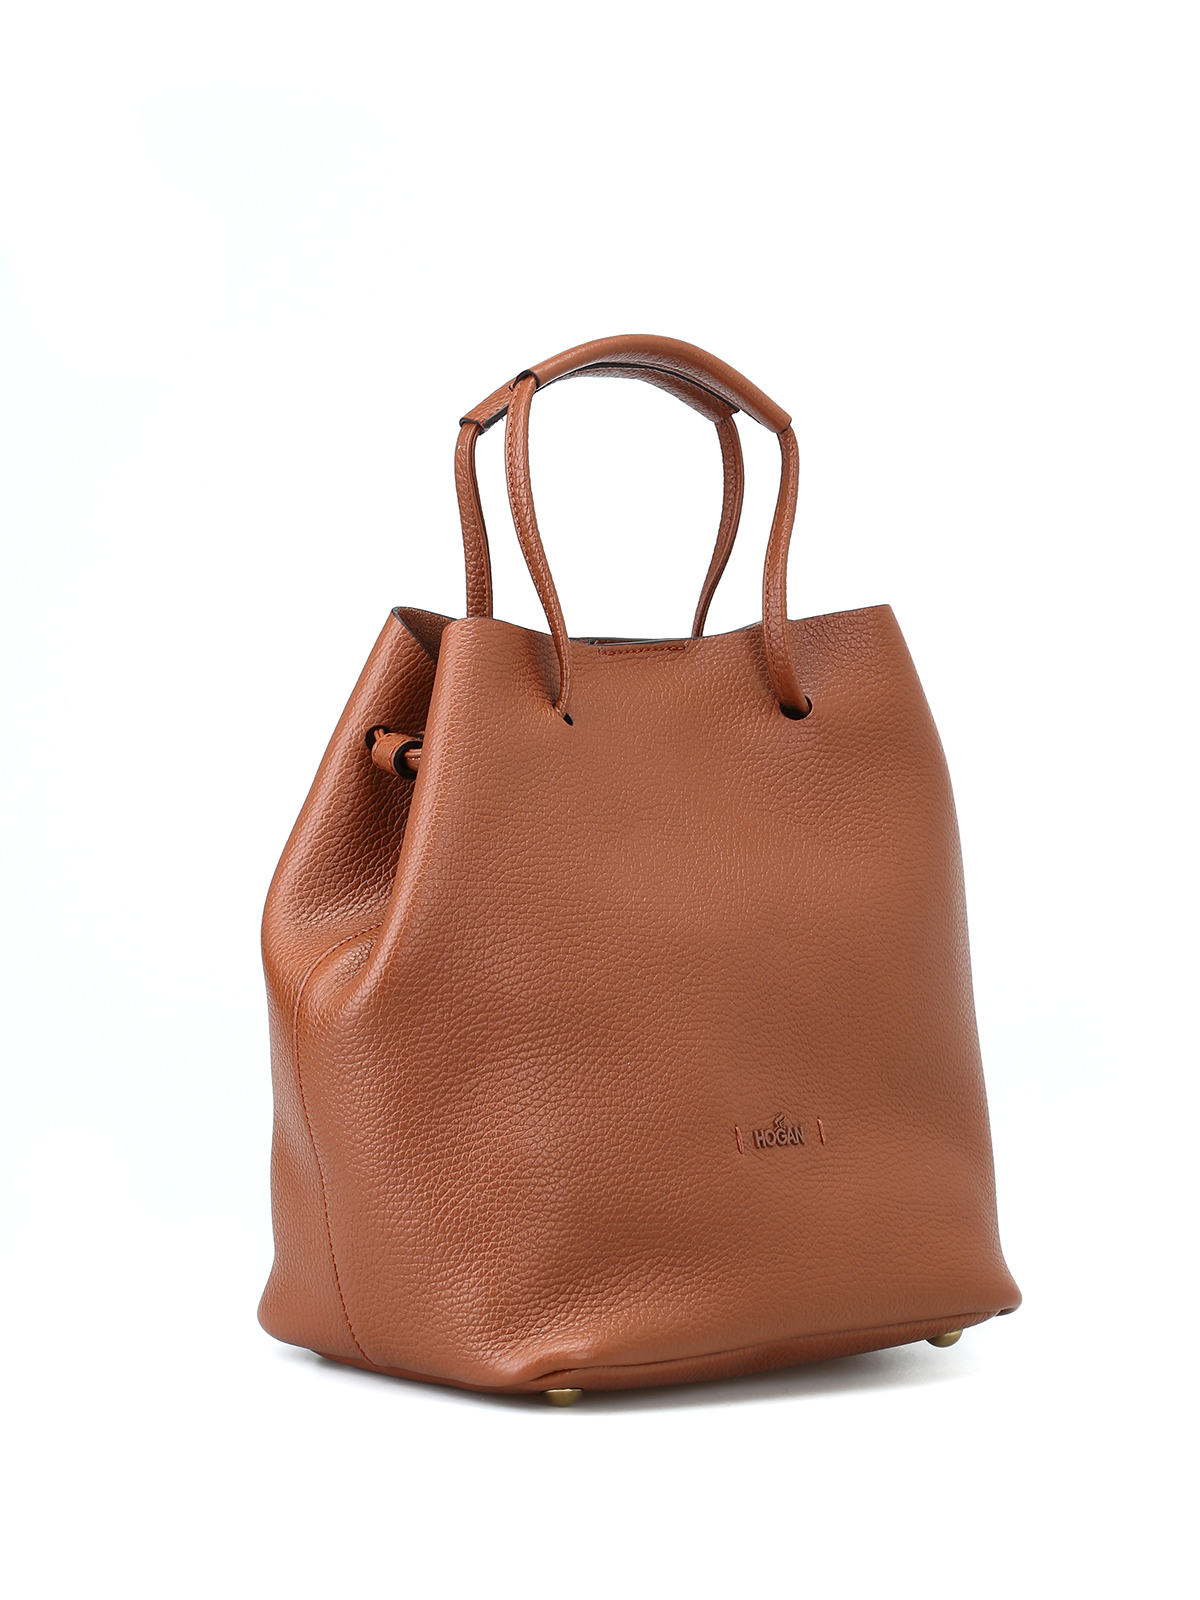 HOGAN  Bucket bags online - Brown soft hammered leather bucket bag 7fc4a99f97f